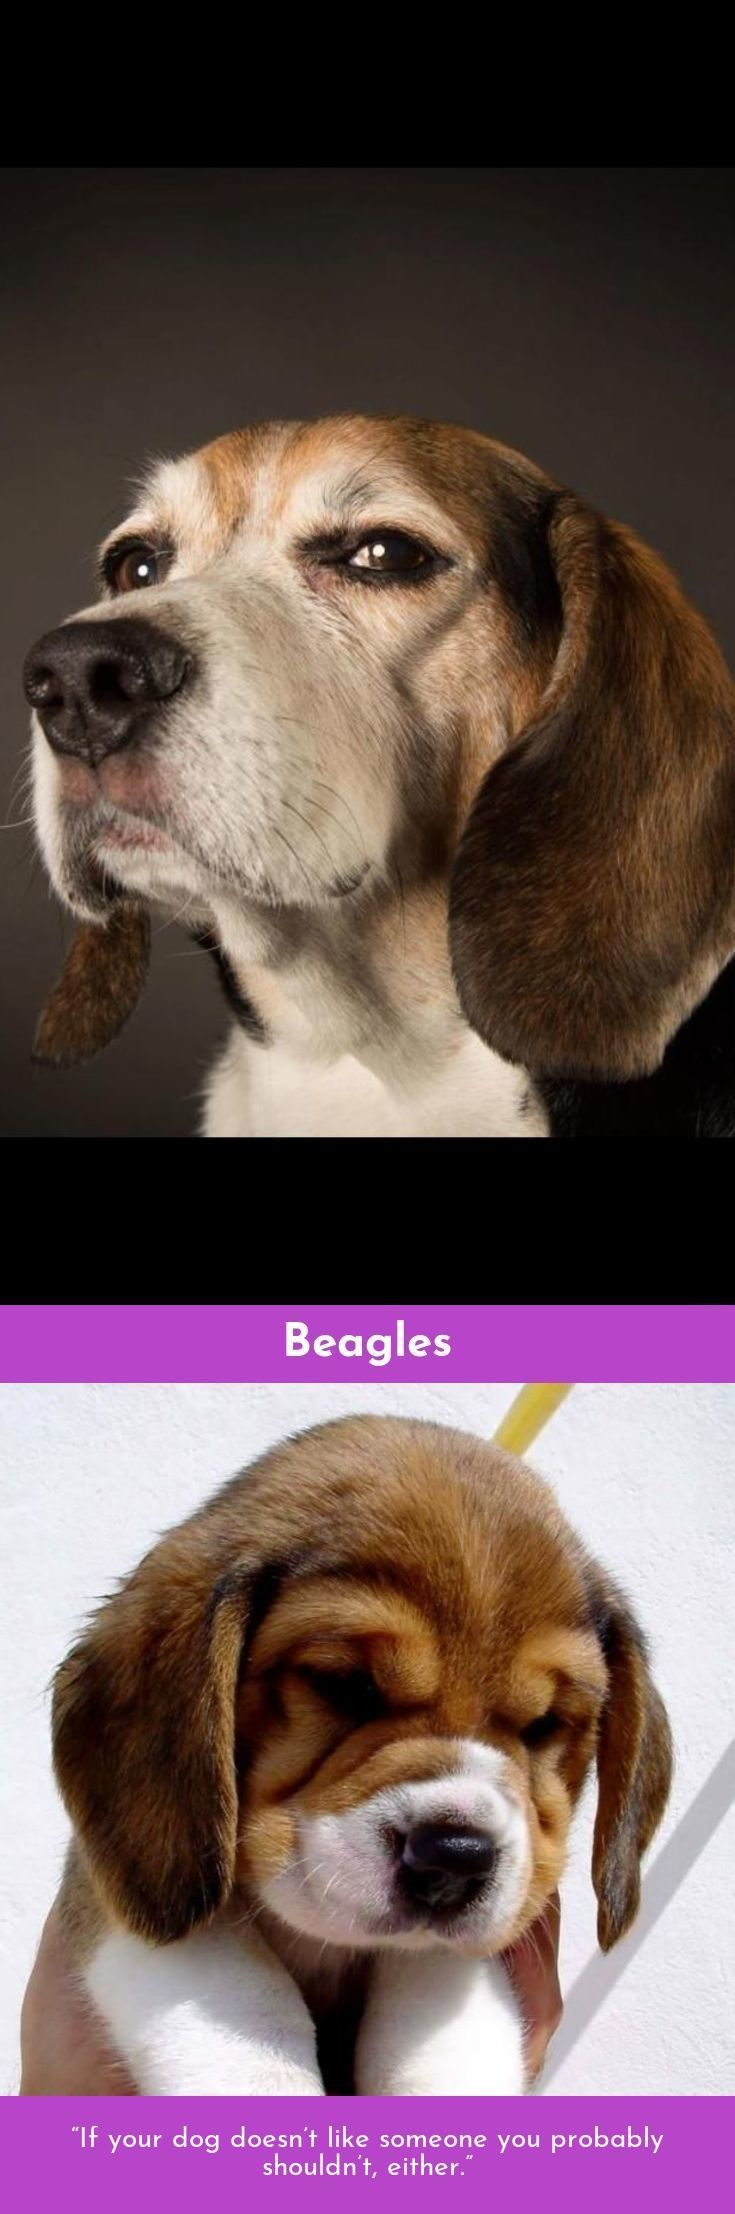 Beagle – Friendly And Curious